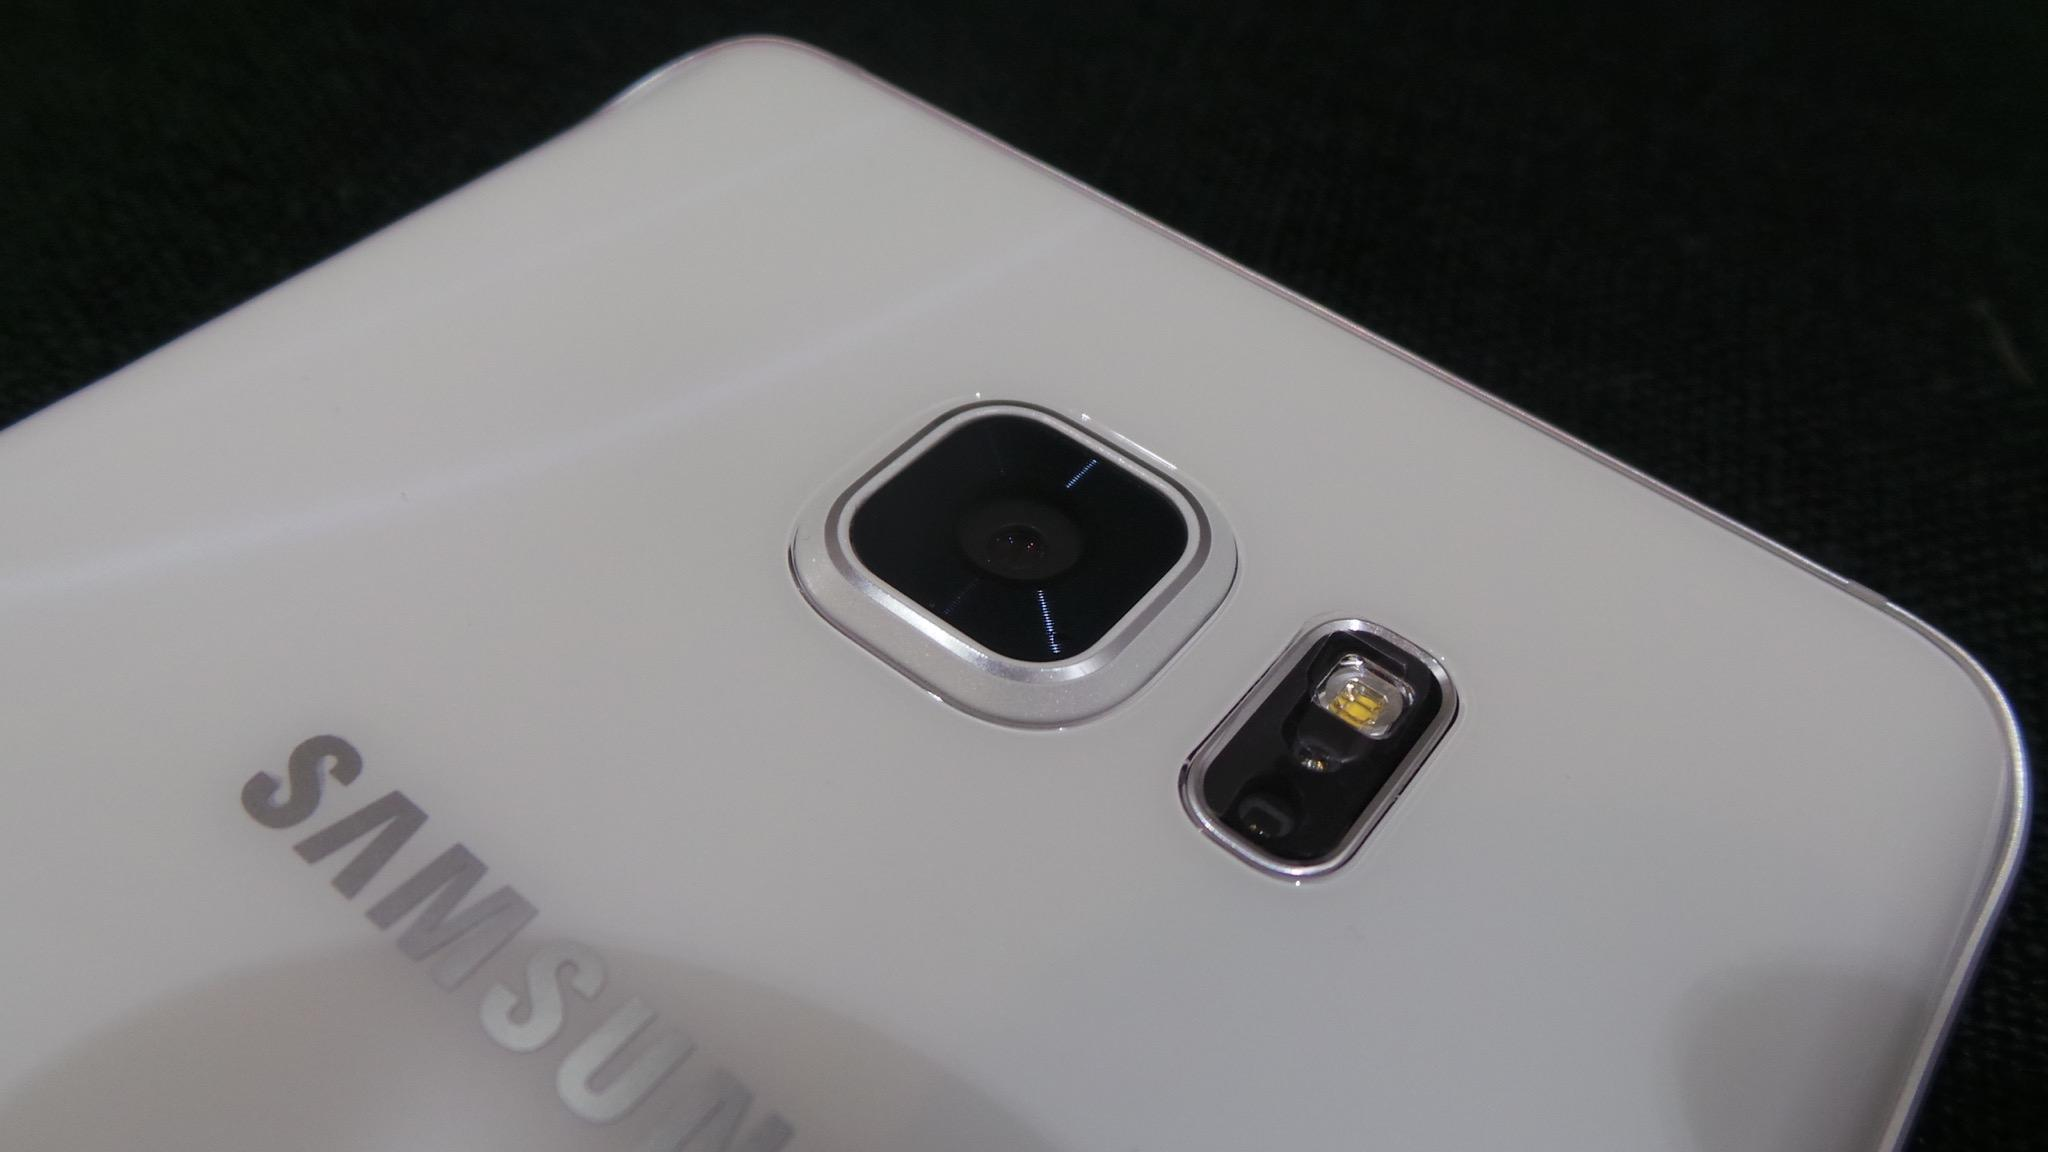 Samsung Galaxy Note 5 cámara